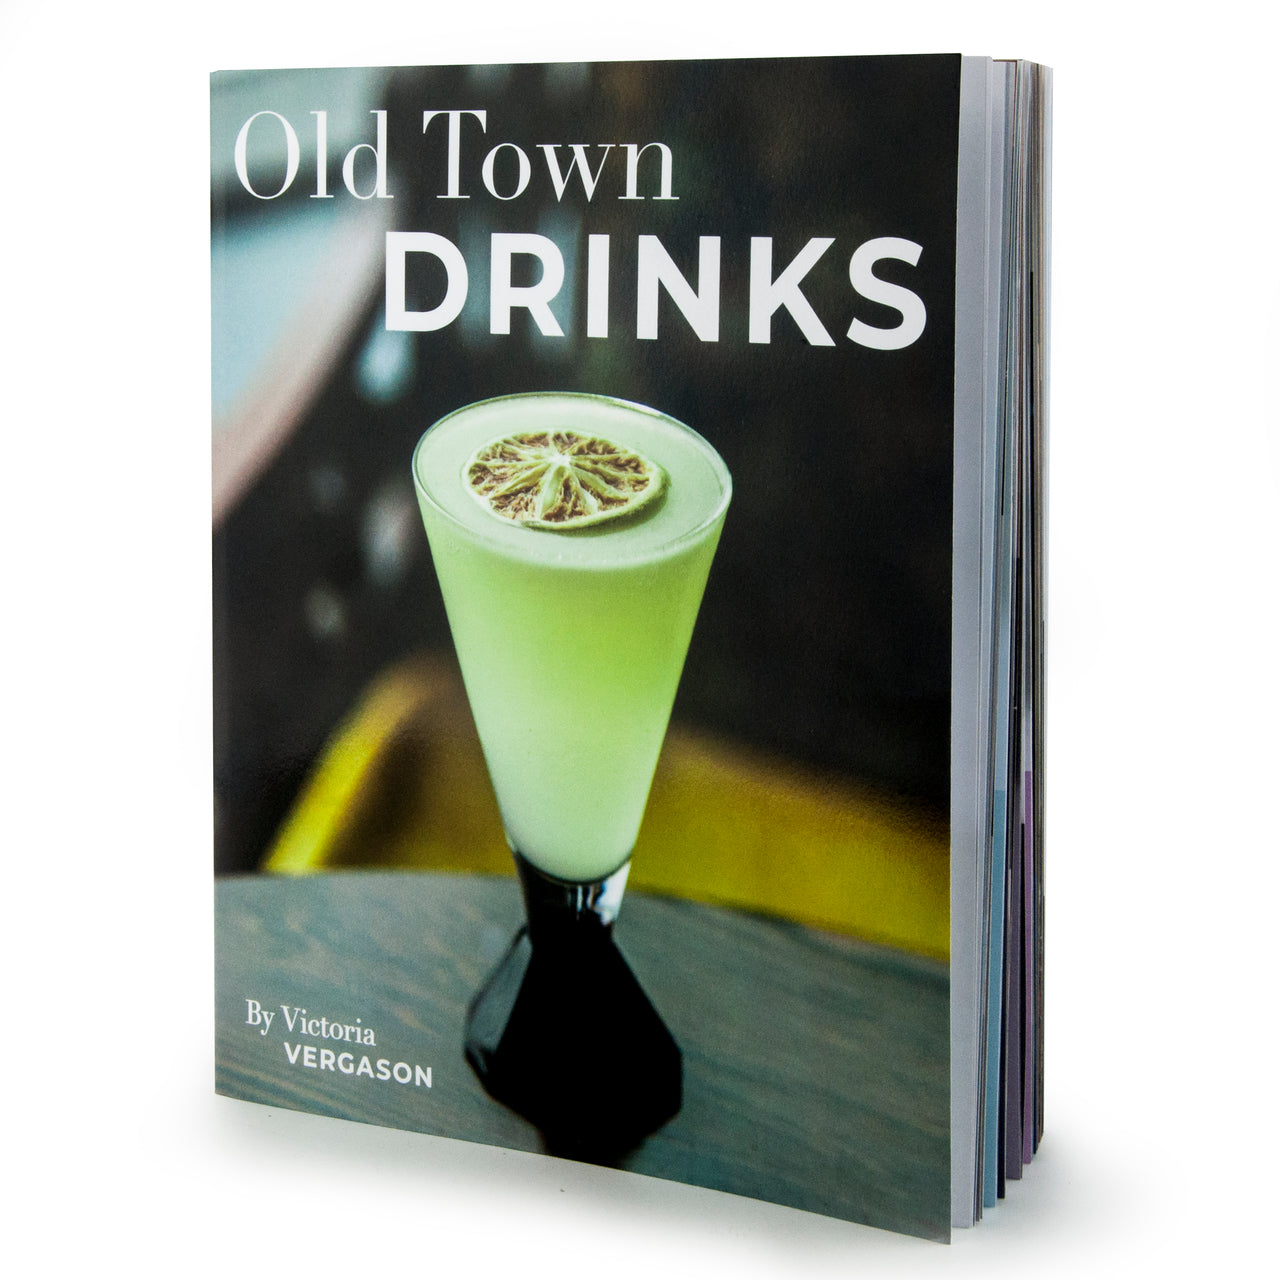 Old Town Drinks Cocktail By Victoria Vergason Alexandria Virginia